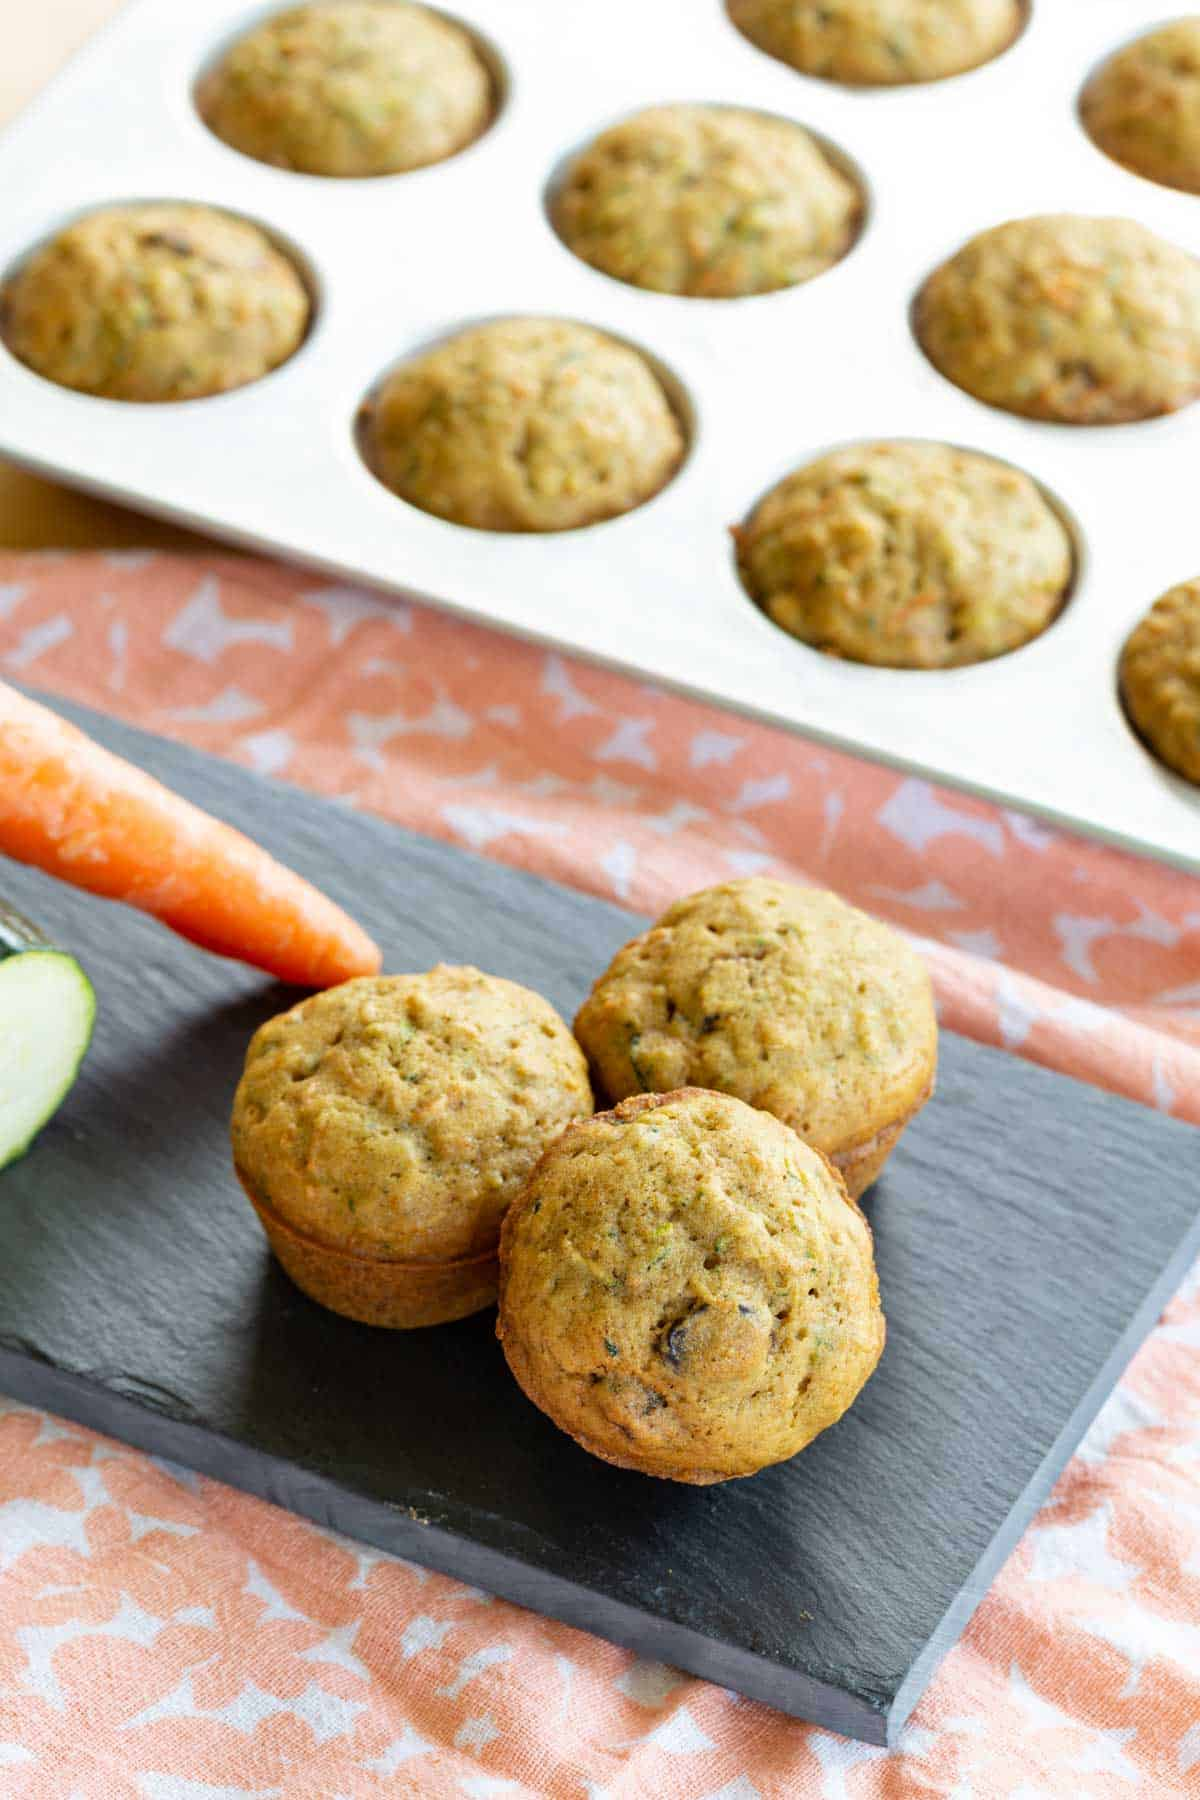 three gluten free mini muffins on a platter in front of a pan of more carrot zucchini muffins